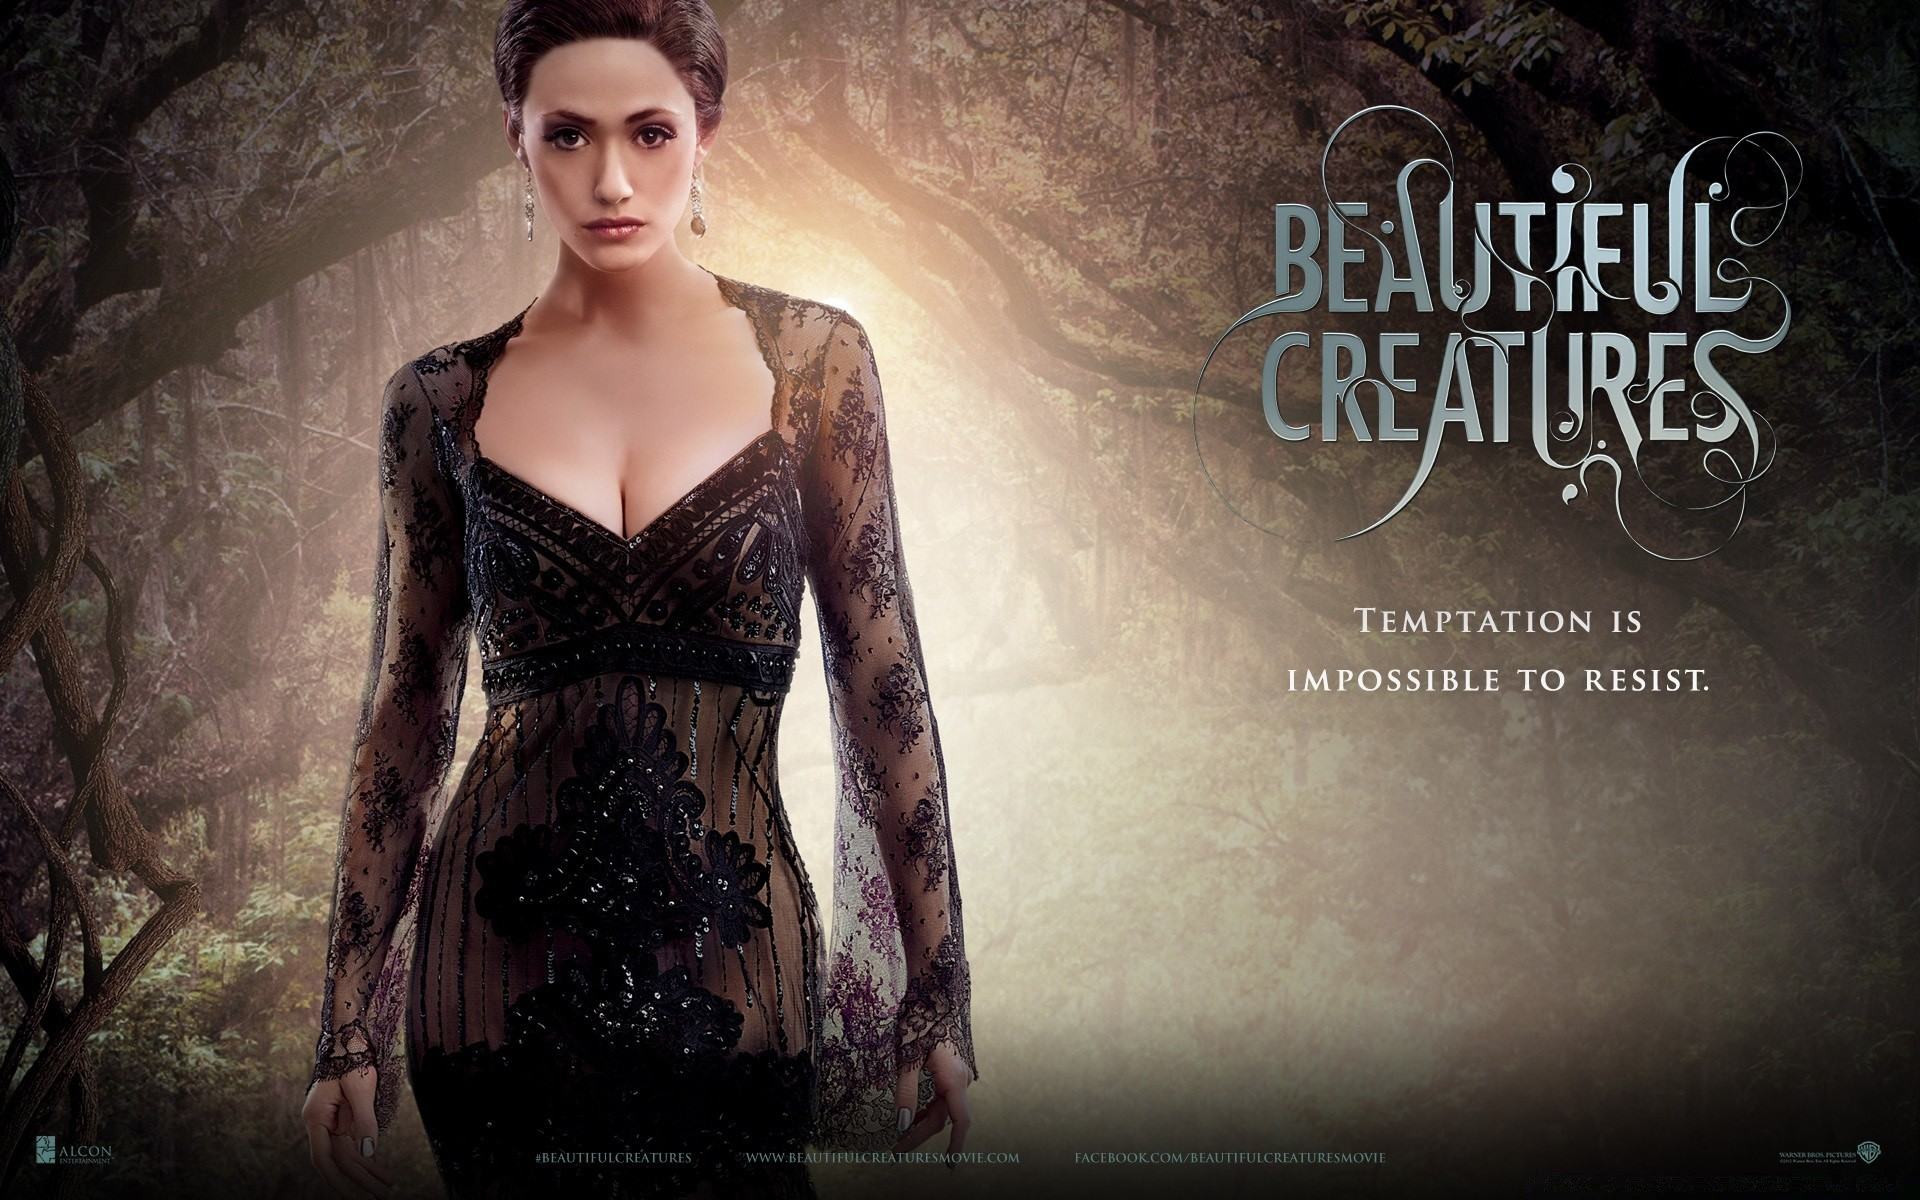 Emmy rossum as ridley in beautiful creatures android wallpapers for emmy rossum as ridley in beautiful creatures android wallpapers for free voltagebd Gallery